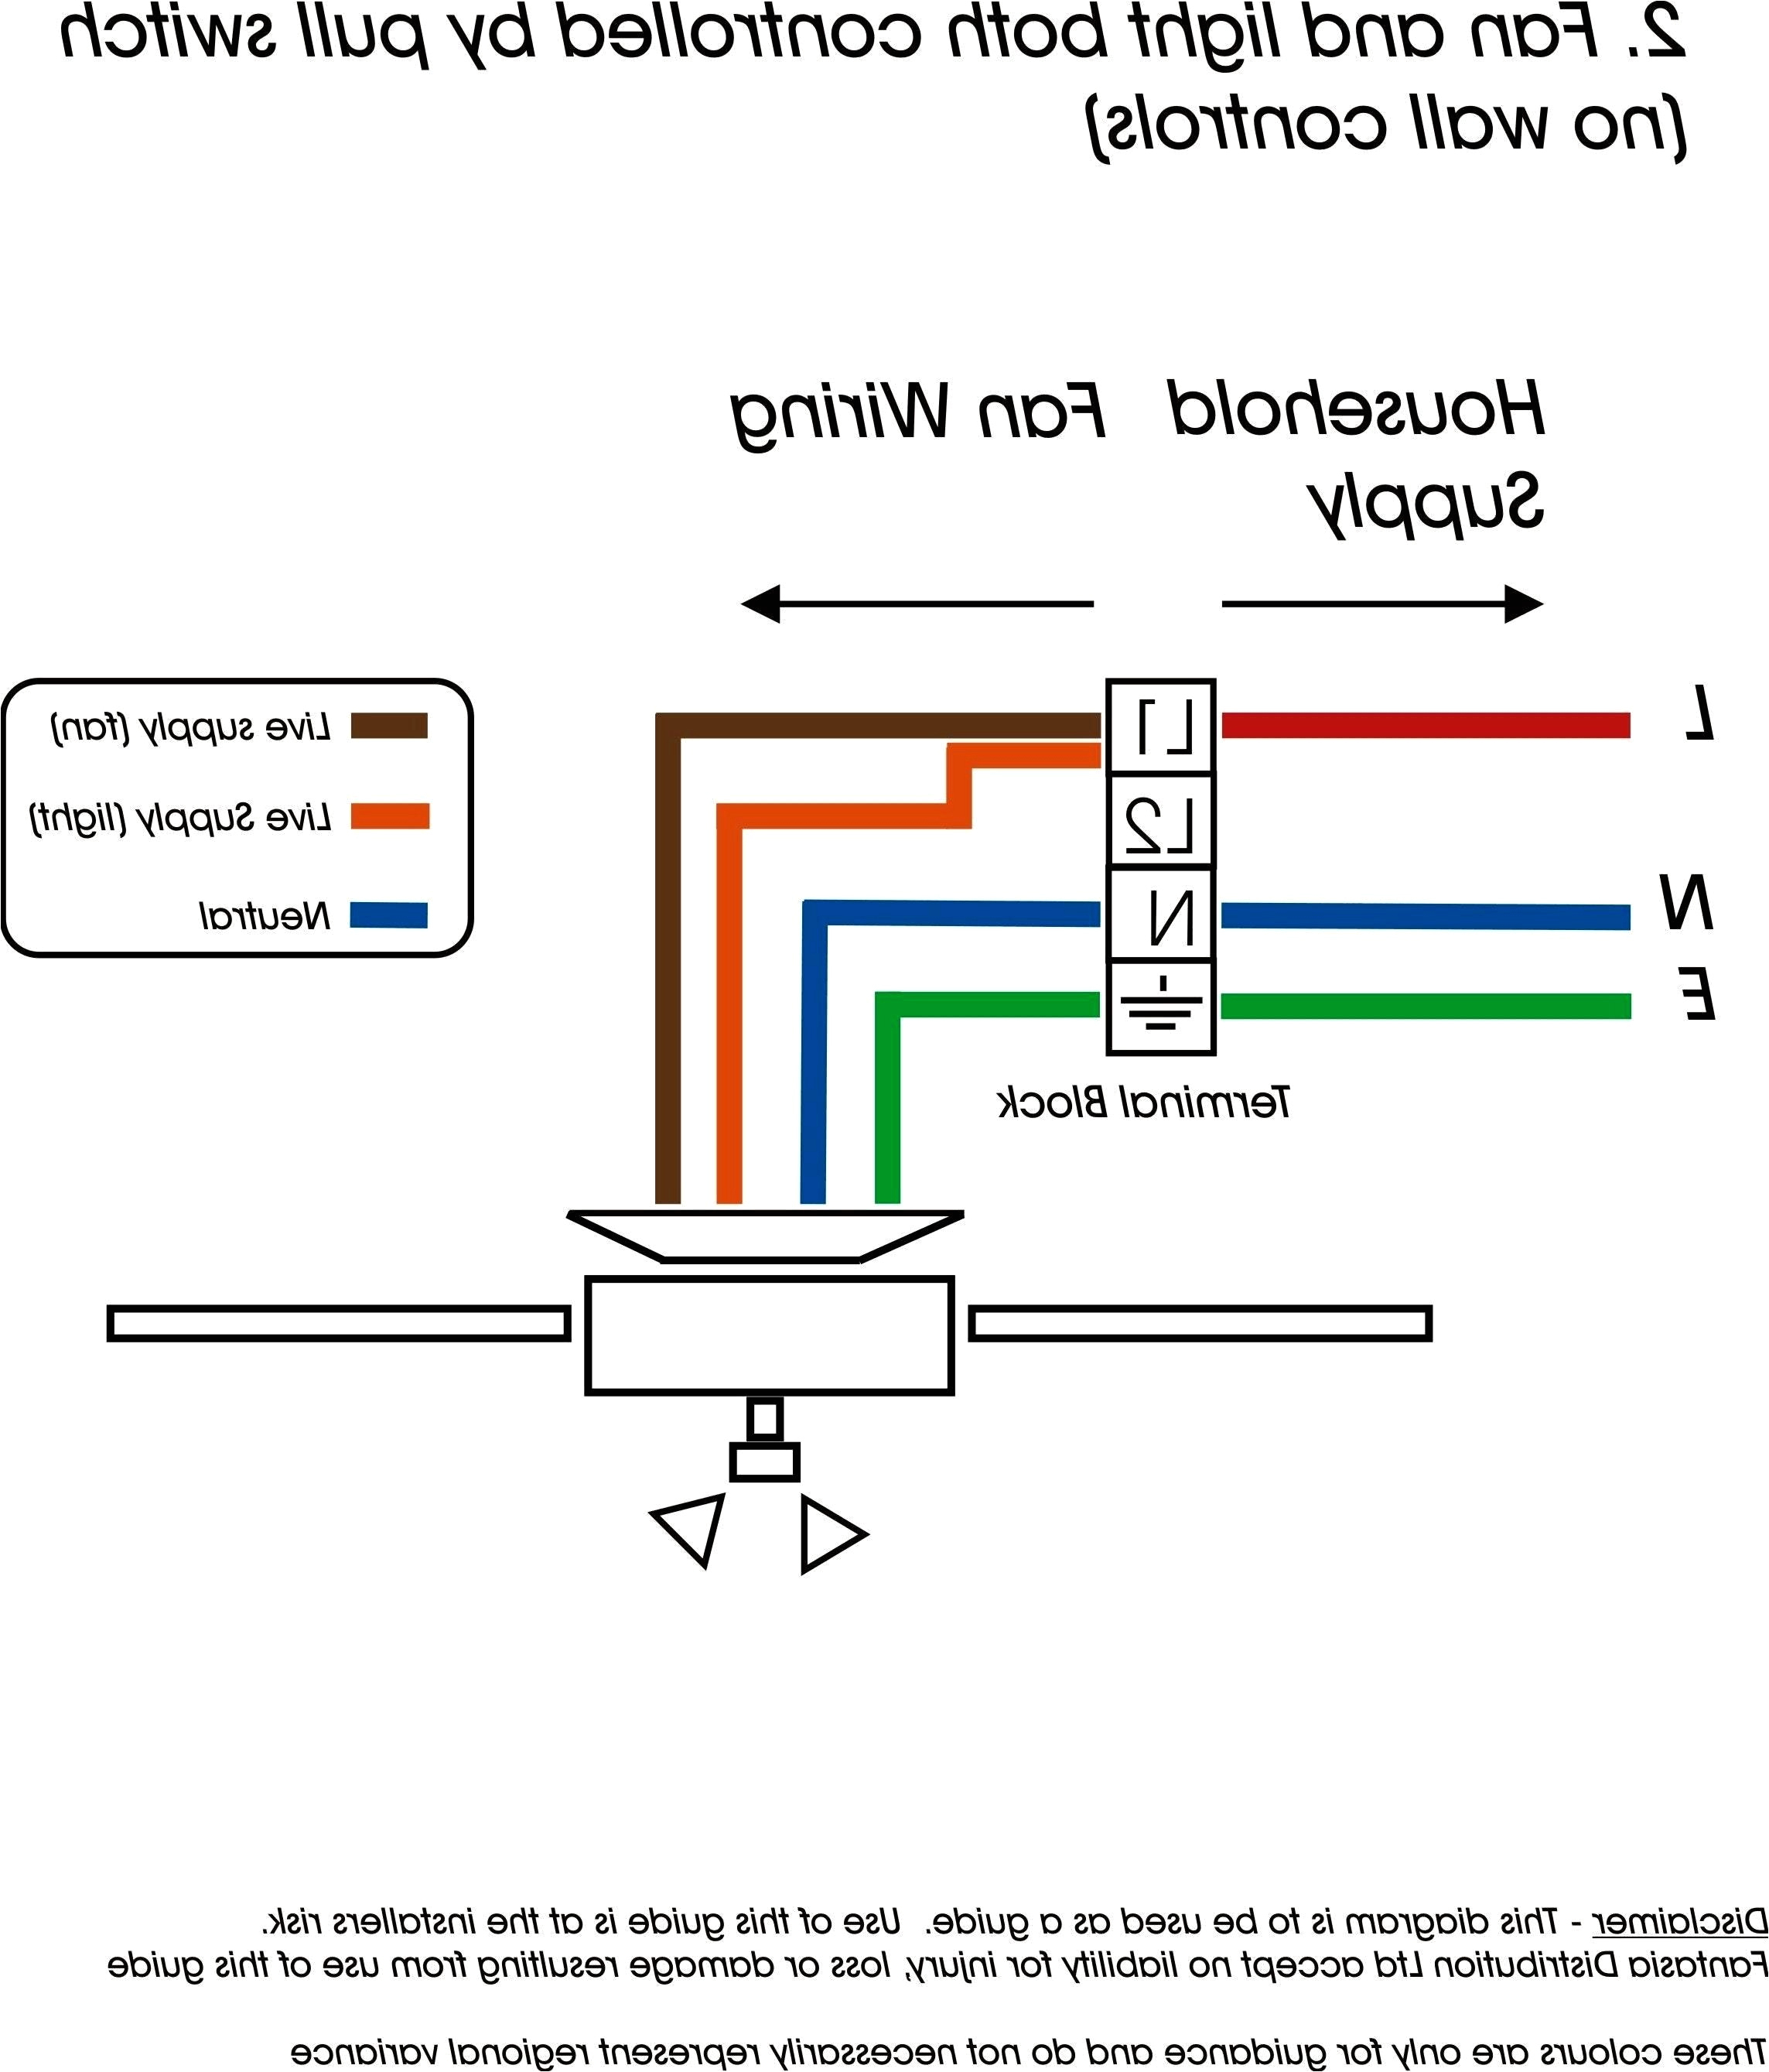 dish network wiring diagram gallery dish network cable wiring diagram